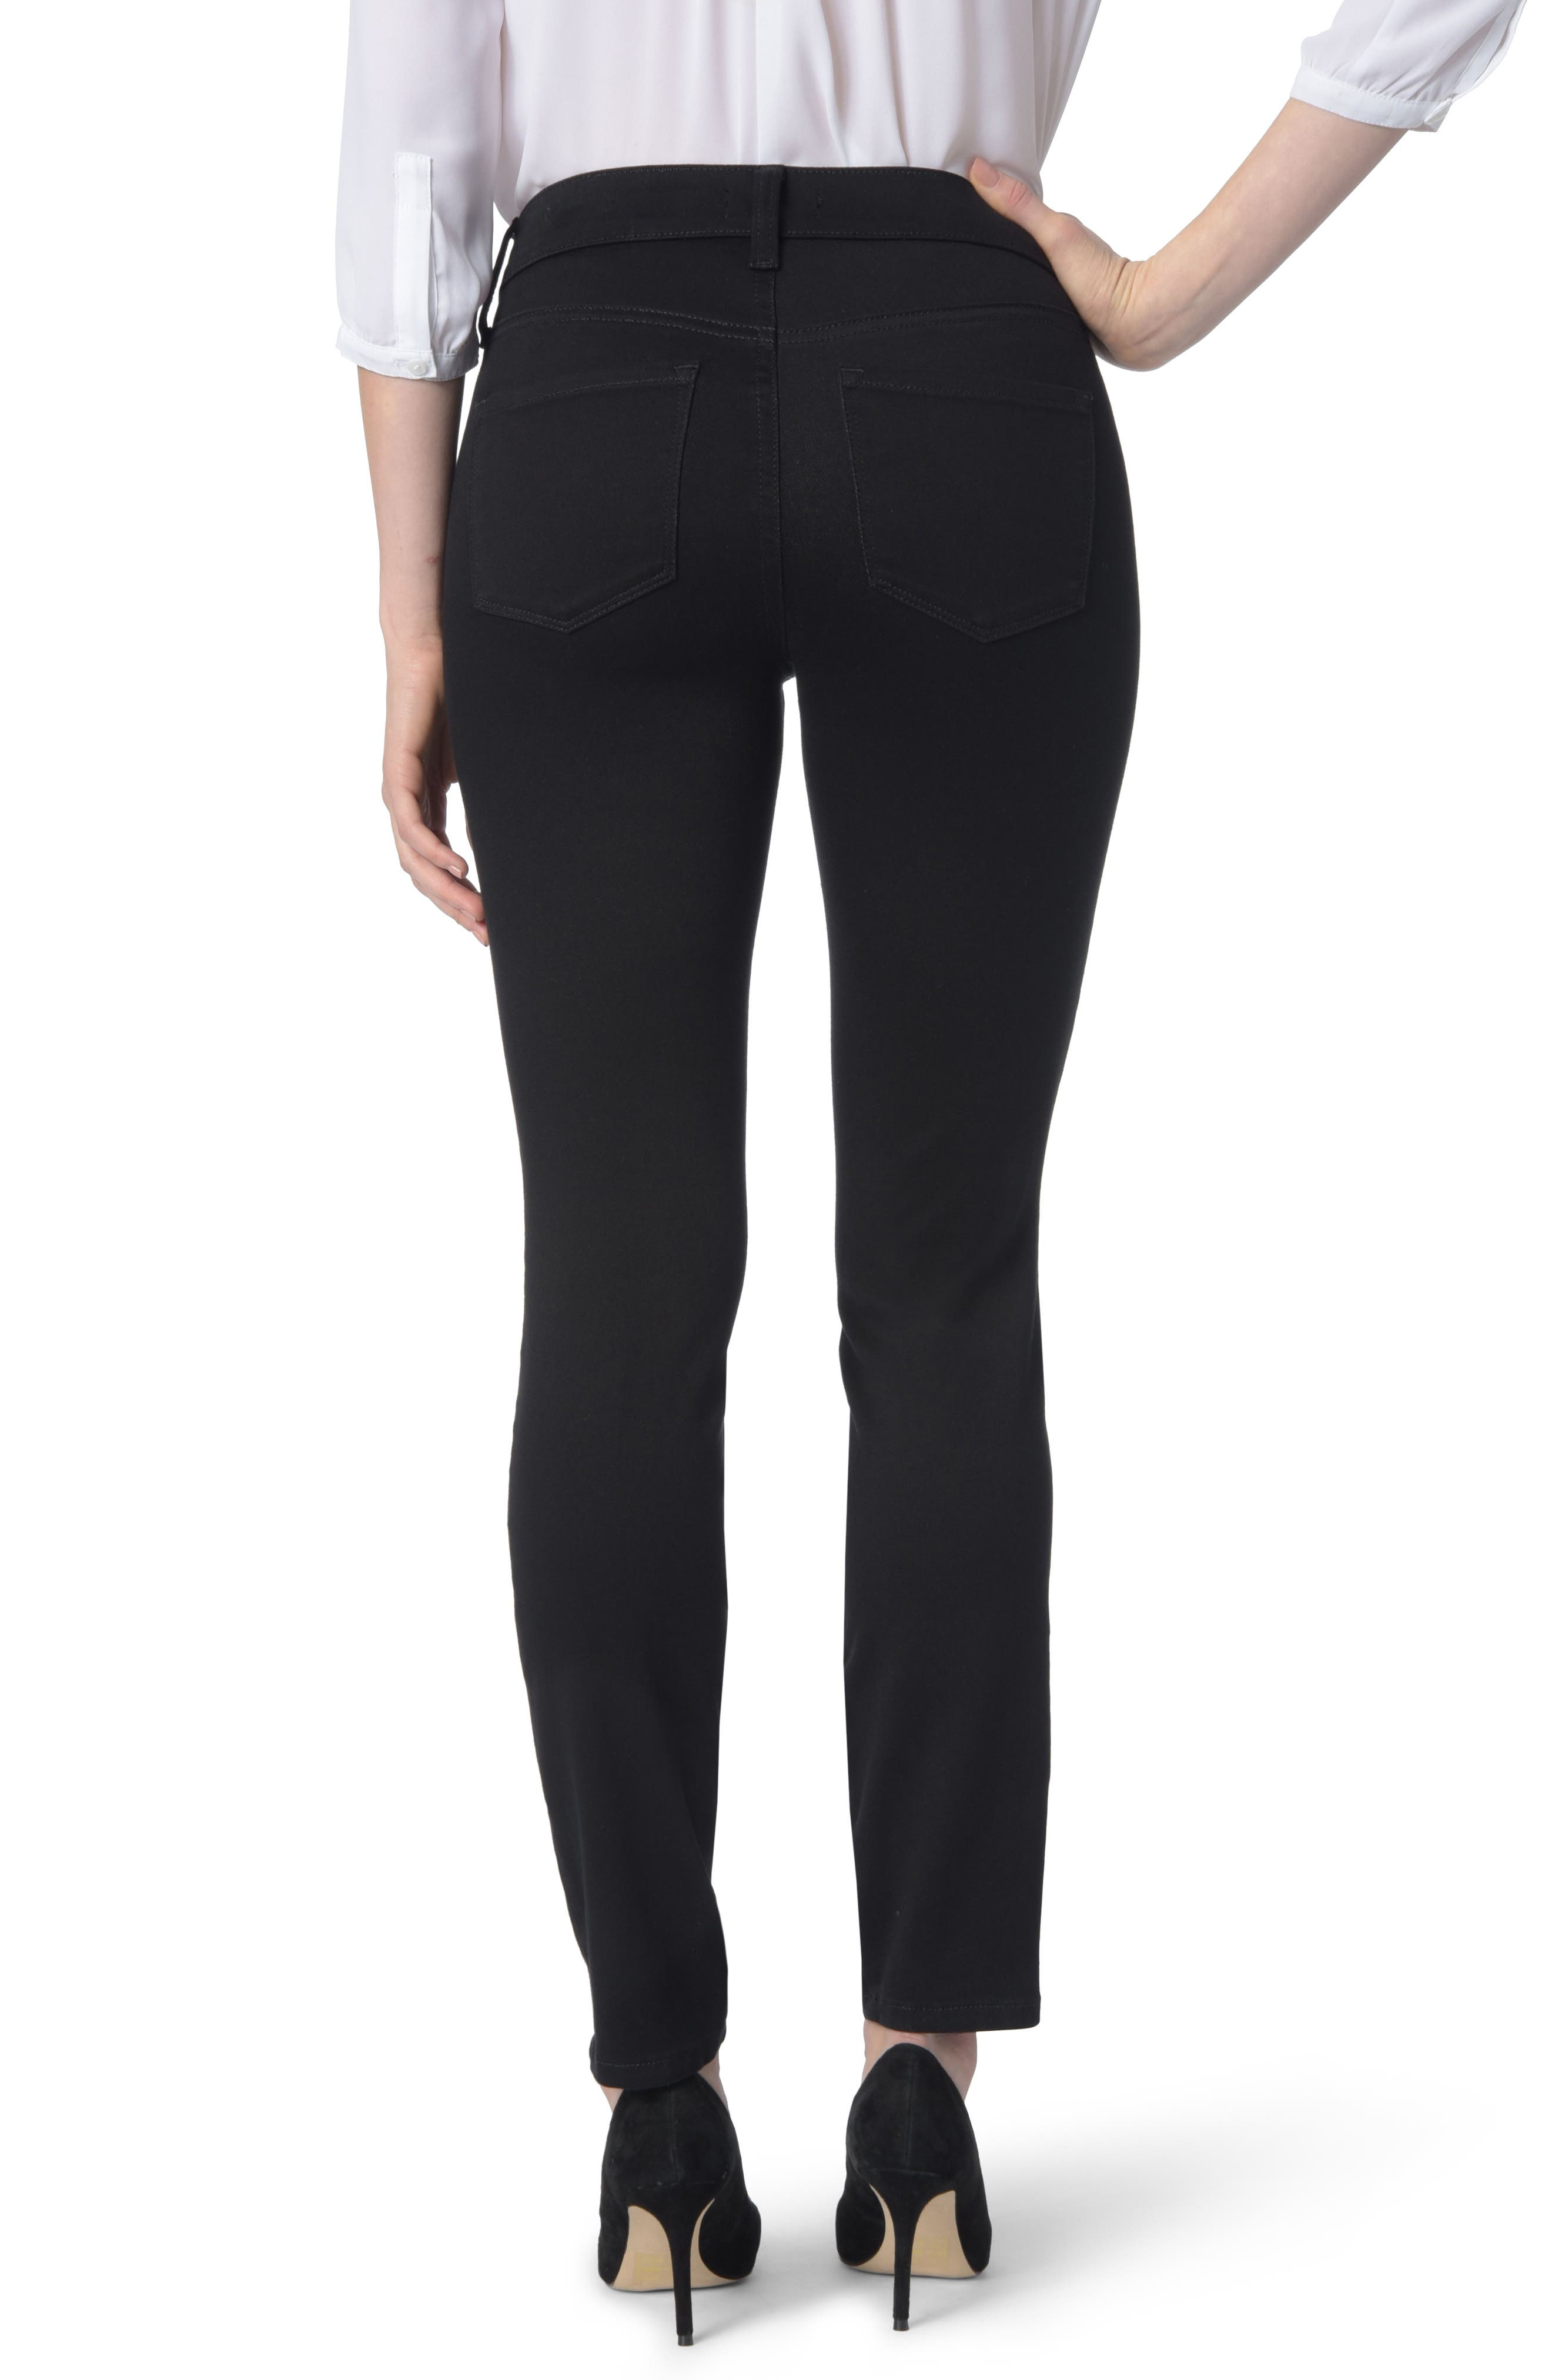 Ami High Waist Colored Stretch Skinny Jeans,                             Alternate thumbnail 2, color,                             BLACK